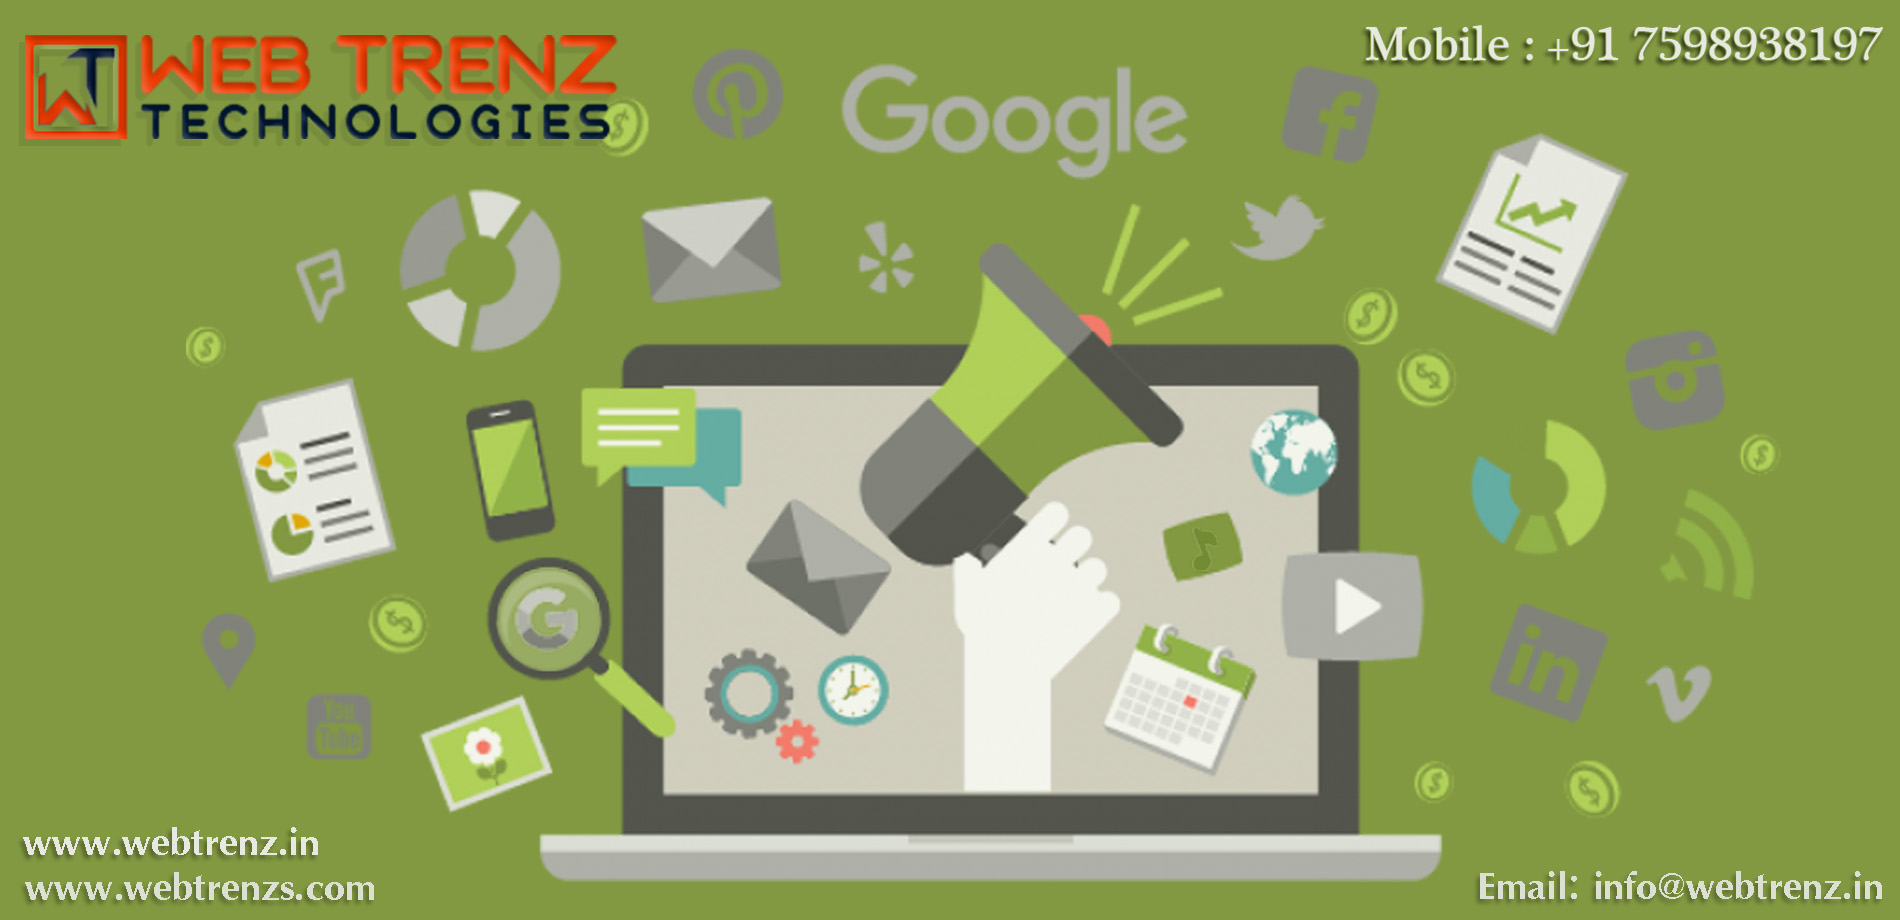 Web Trenz Technologies, Digital Marketing Company In Tambarram, Digital Marketing Company In Velachery, Digital Marketing Company In Medavakkam, Digital Marketing Company In Madipakkam, Digital Marketing Company In Ecr